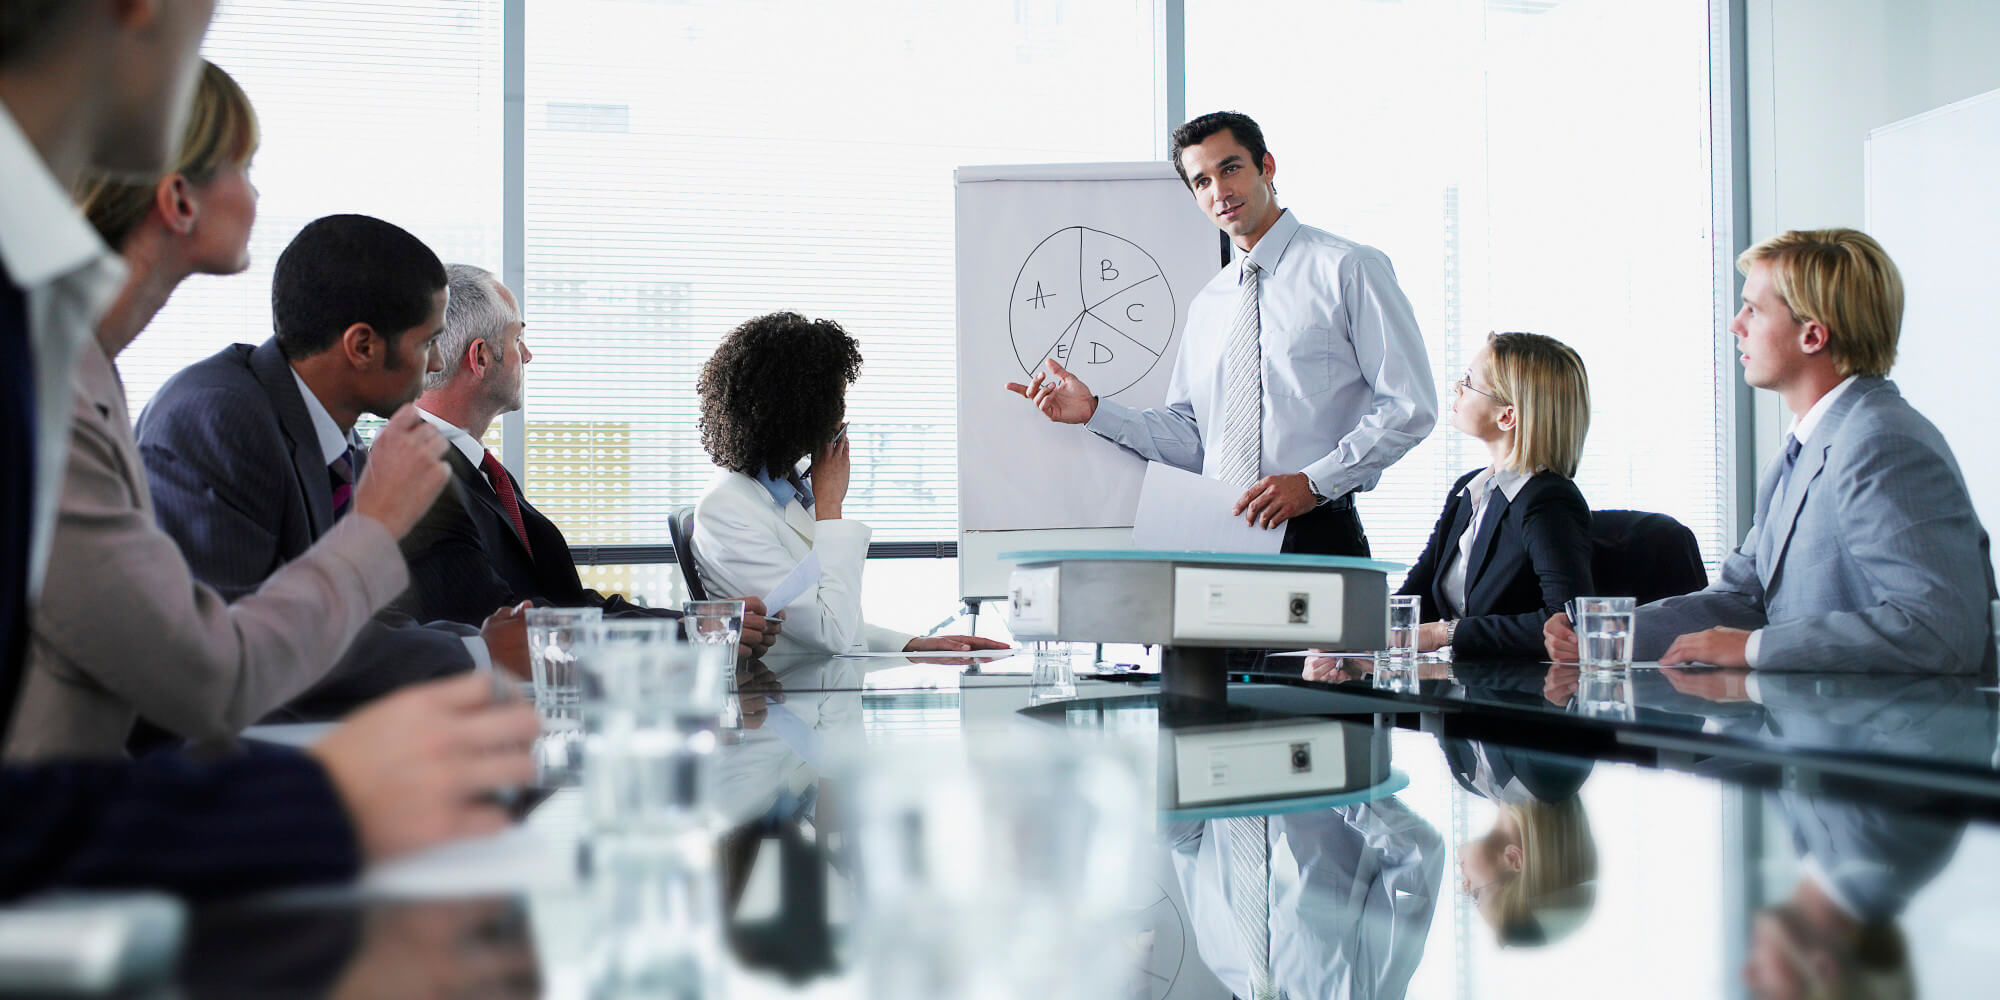 Join Sales Management Training Programs to Become an Independent Sales Person